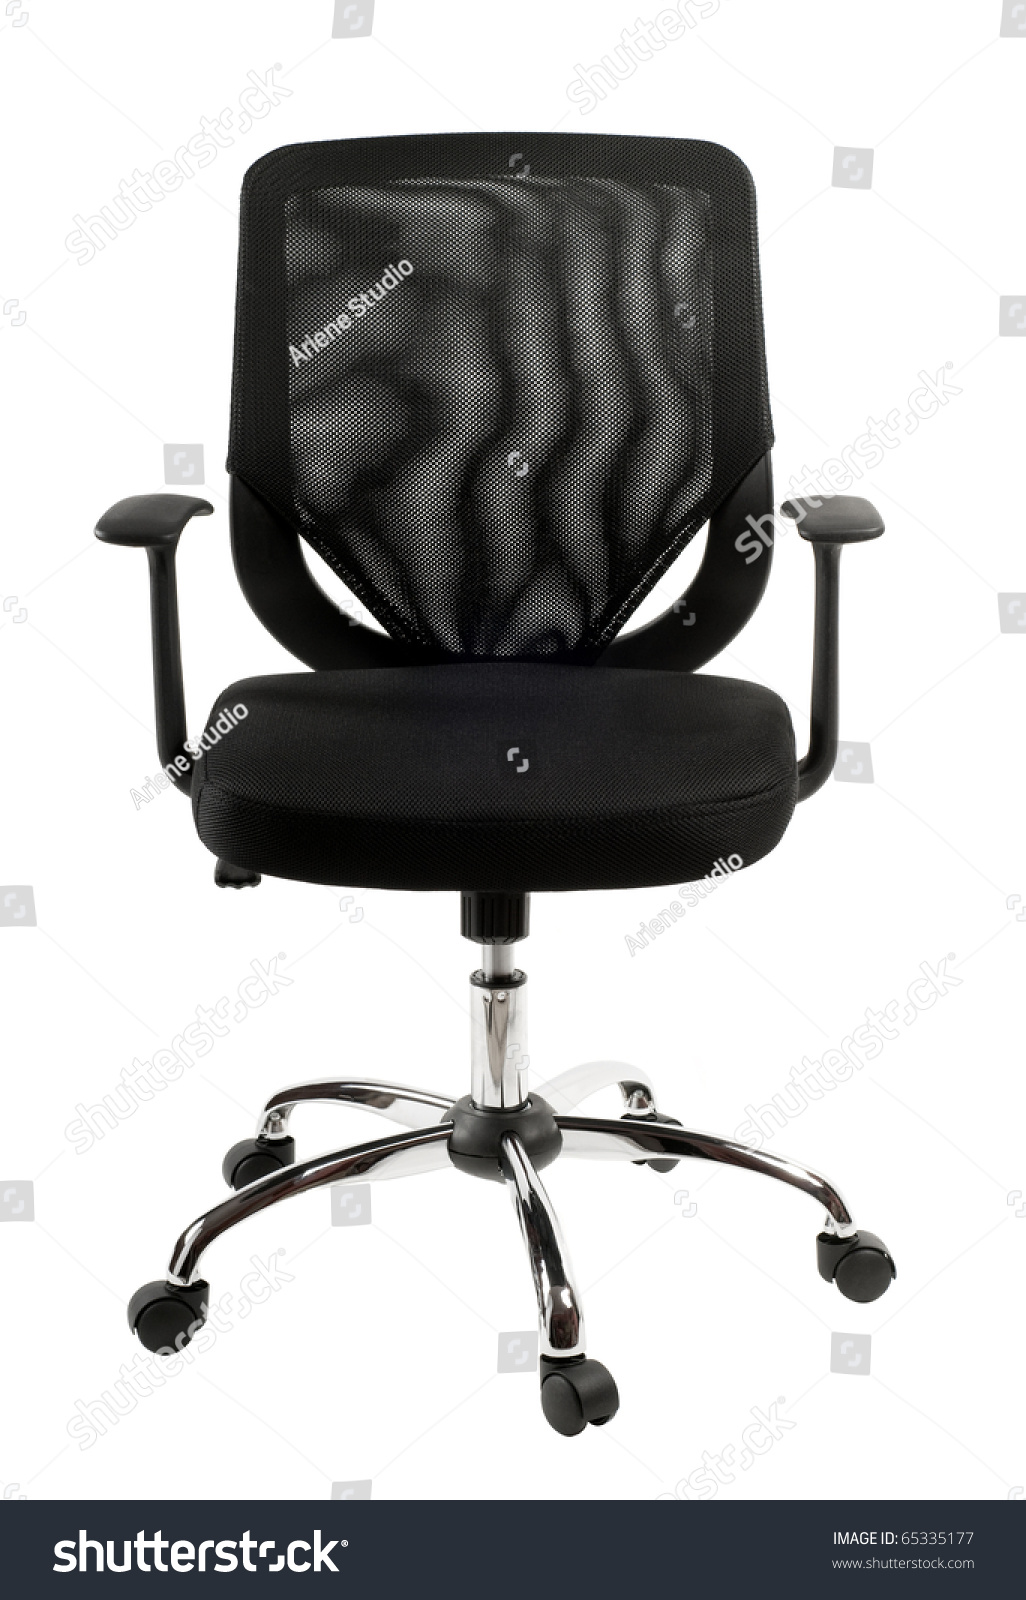 swivel chair em portugues lift recliners elderly comfortable single black office or desk